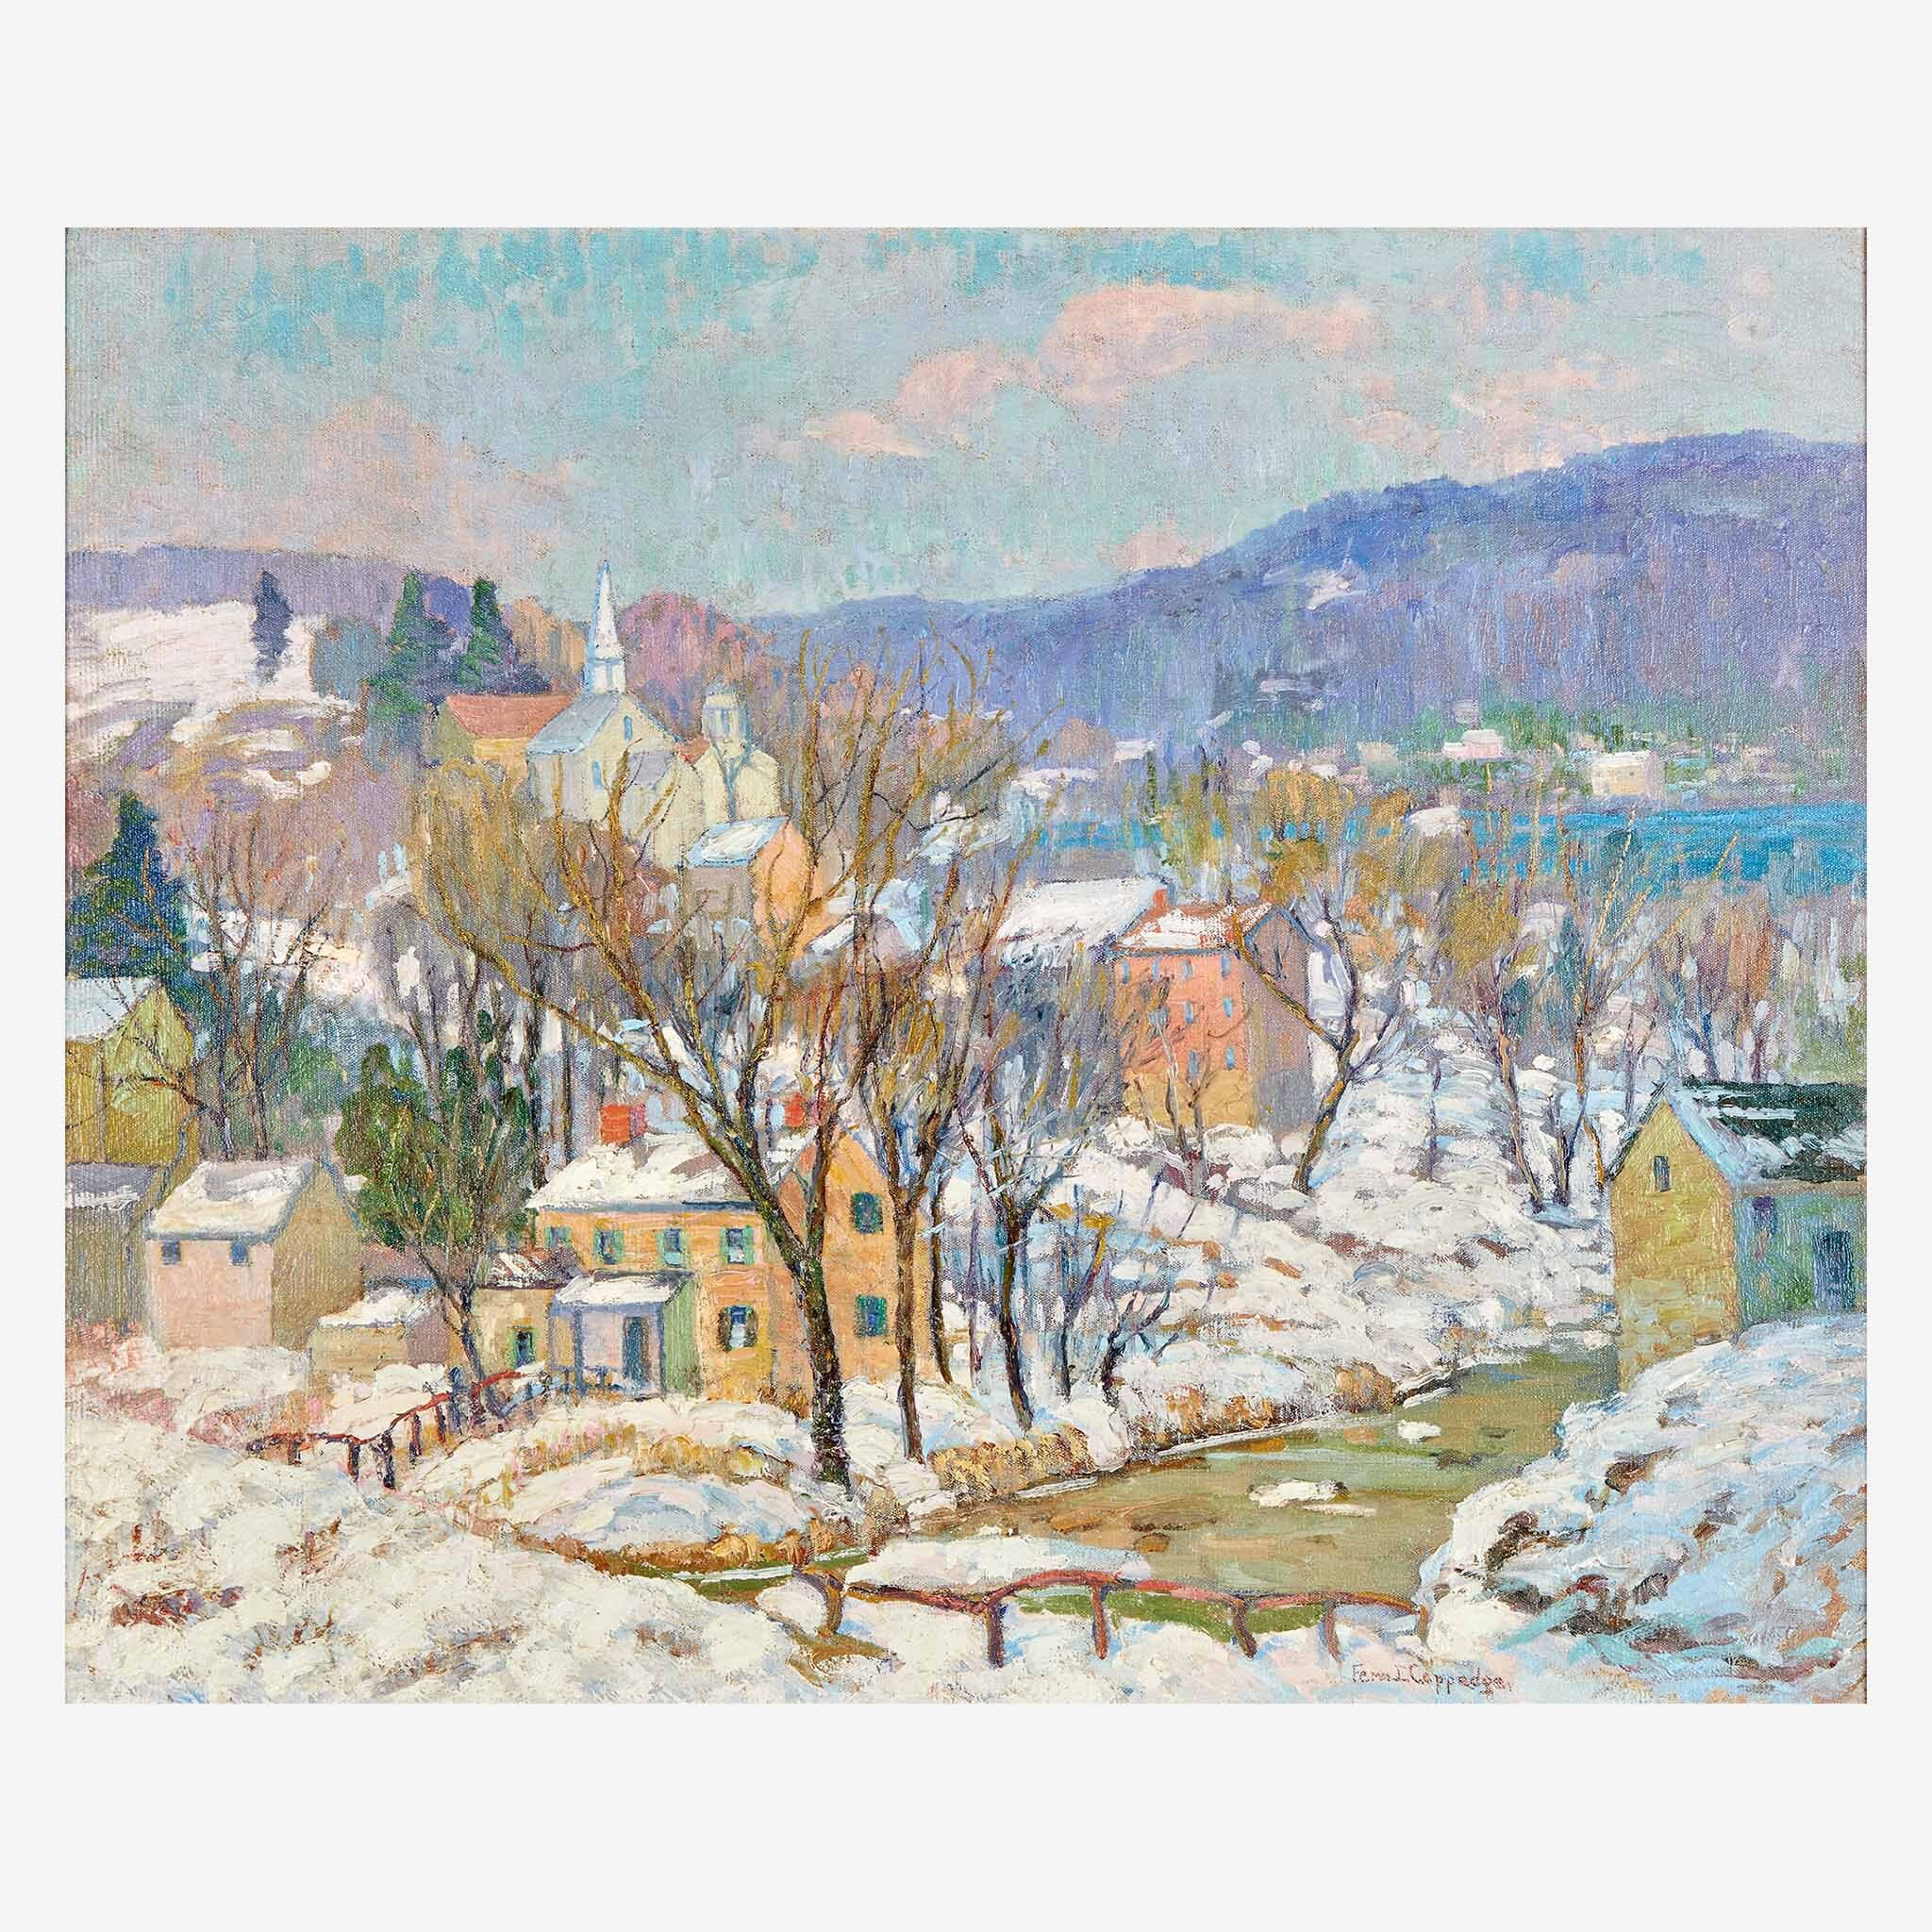 Fern Coppedge, Snowy Country Side